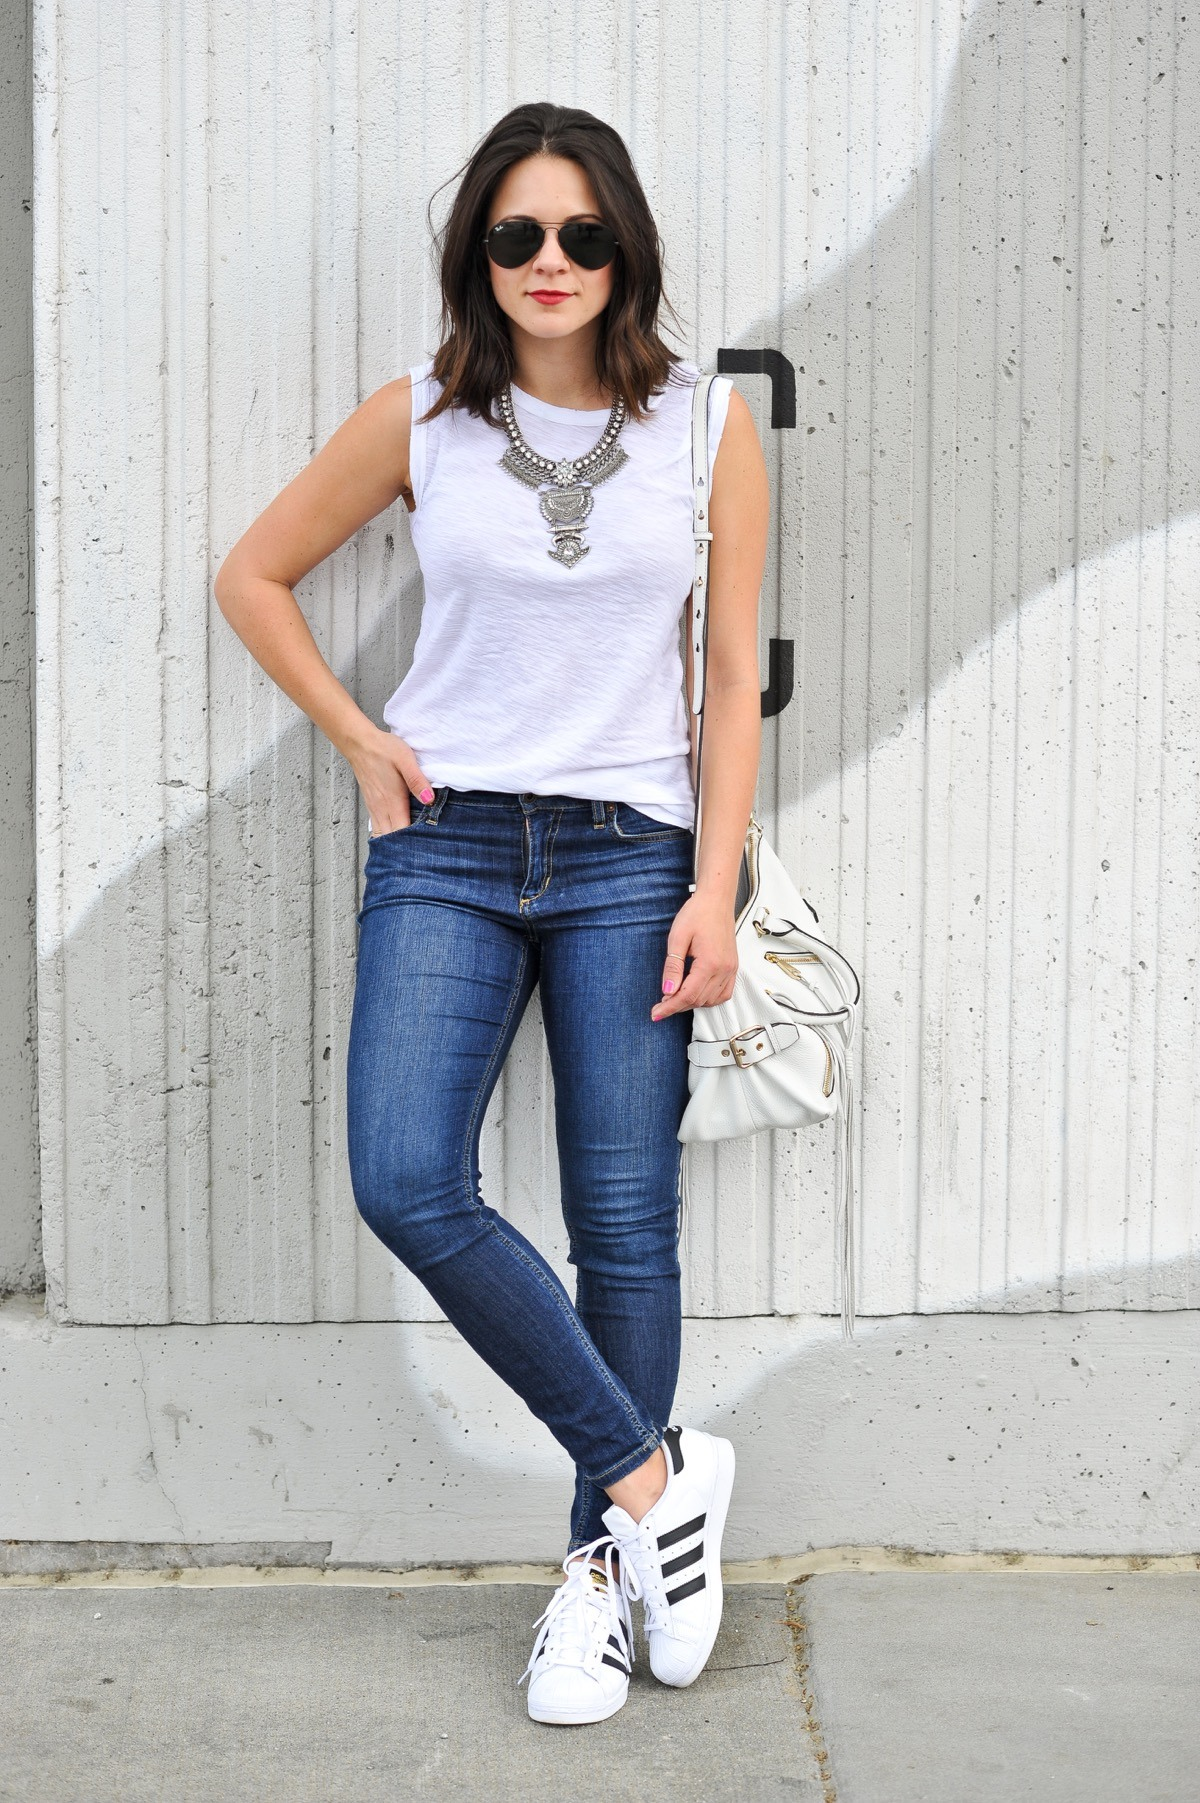 cool ways to wear outfits with adidas shoes (16)